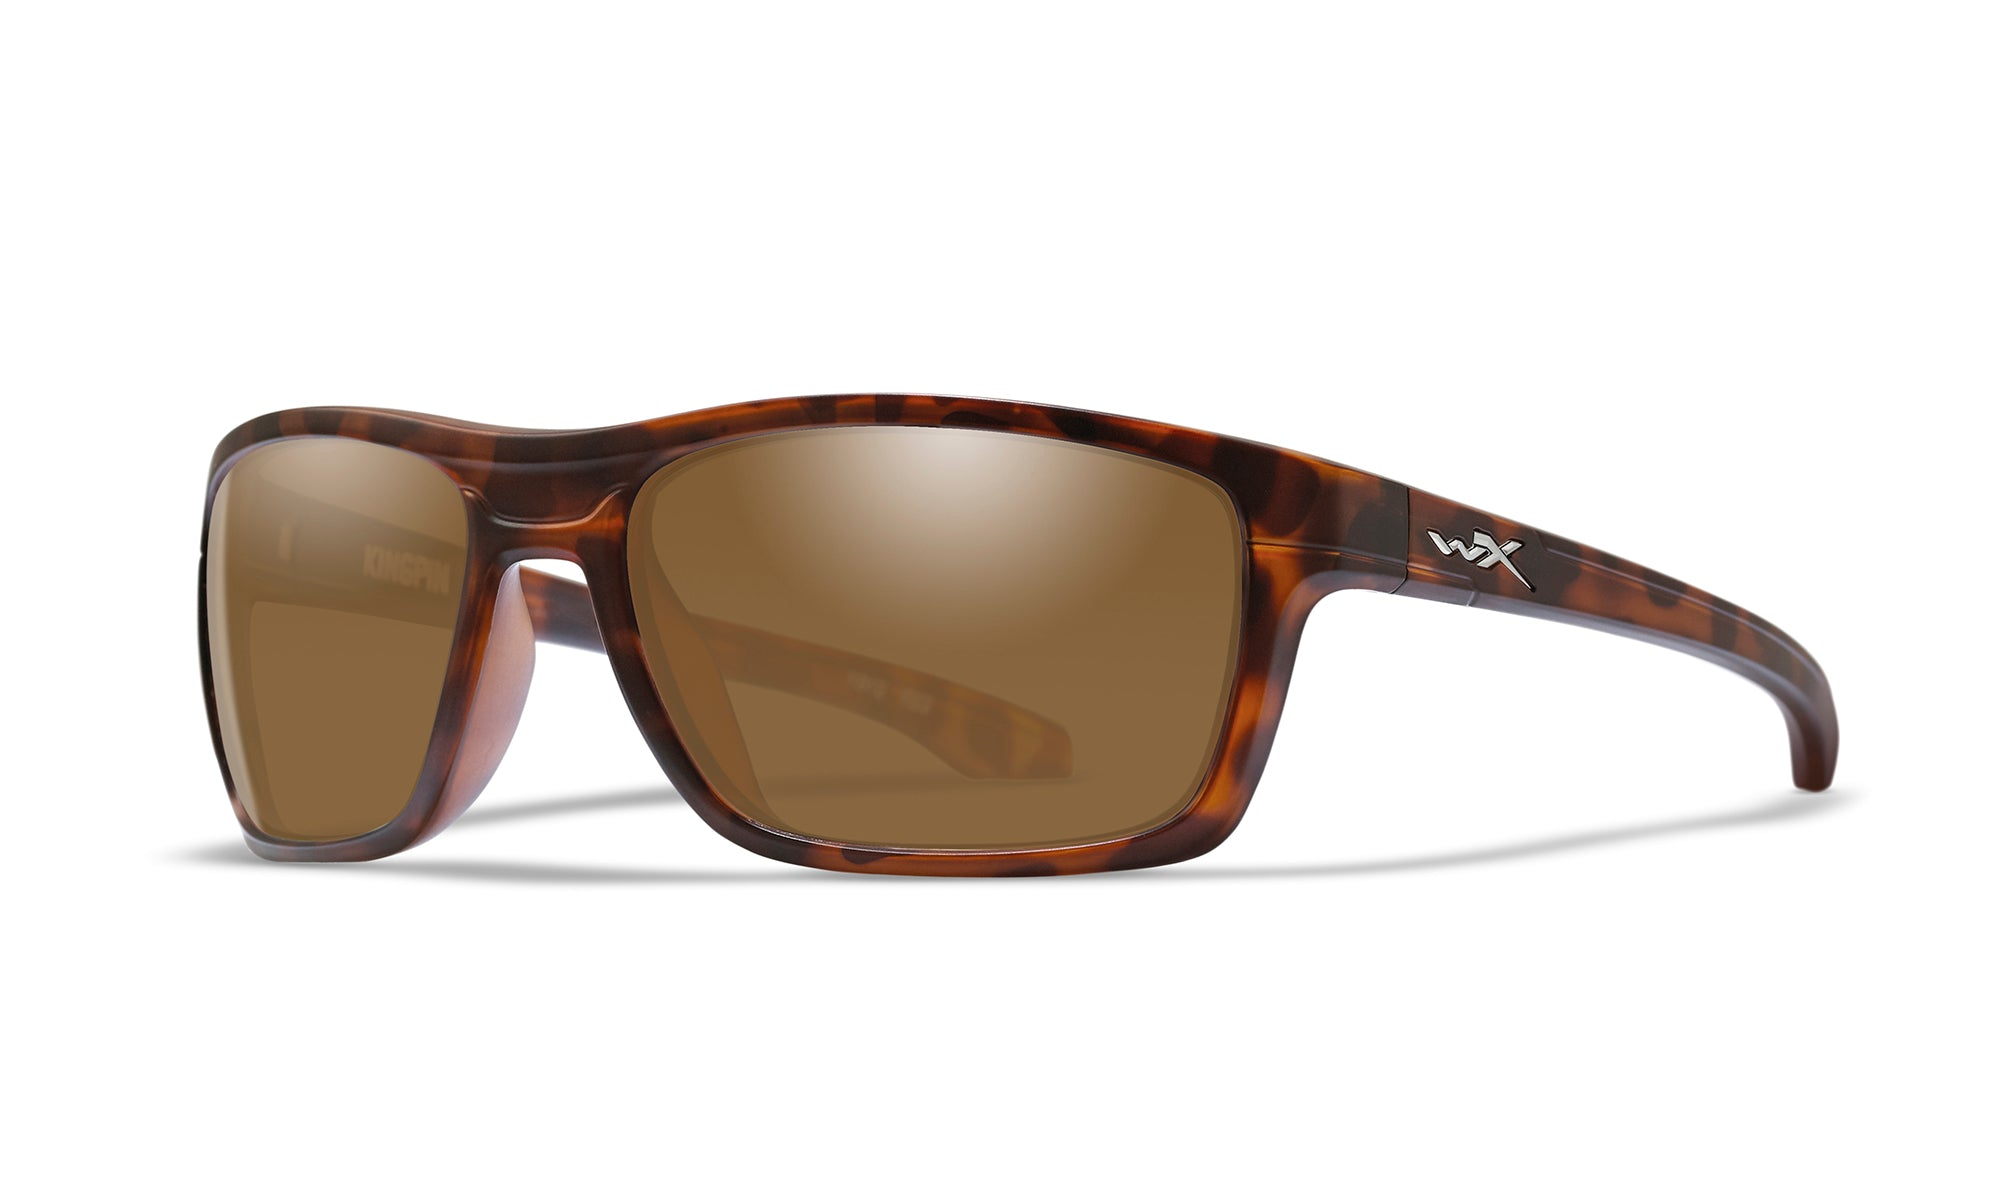 WILEY X WX Kingpin Sunglasses  Matte Demi 60-19-122